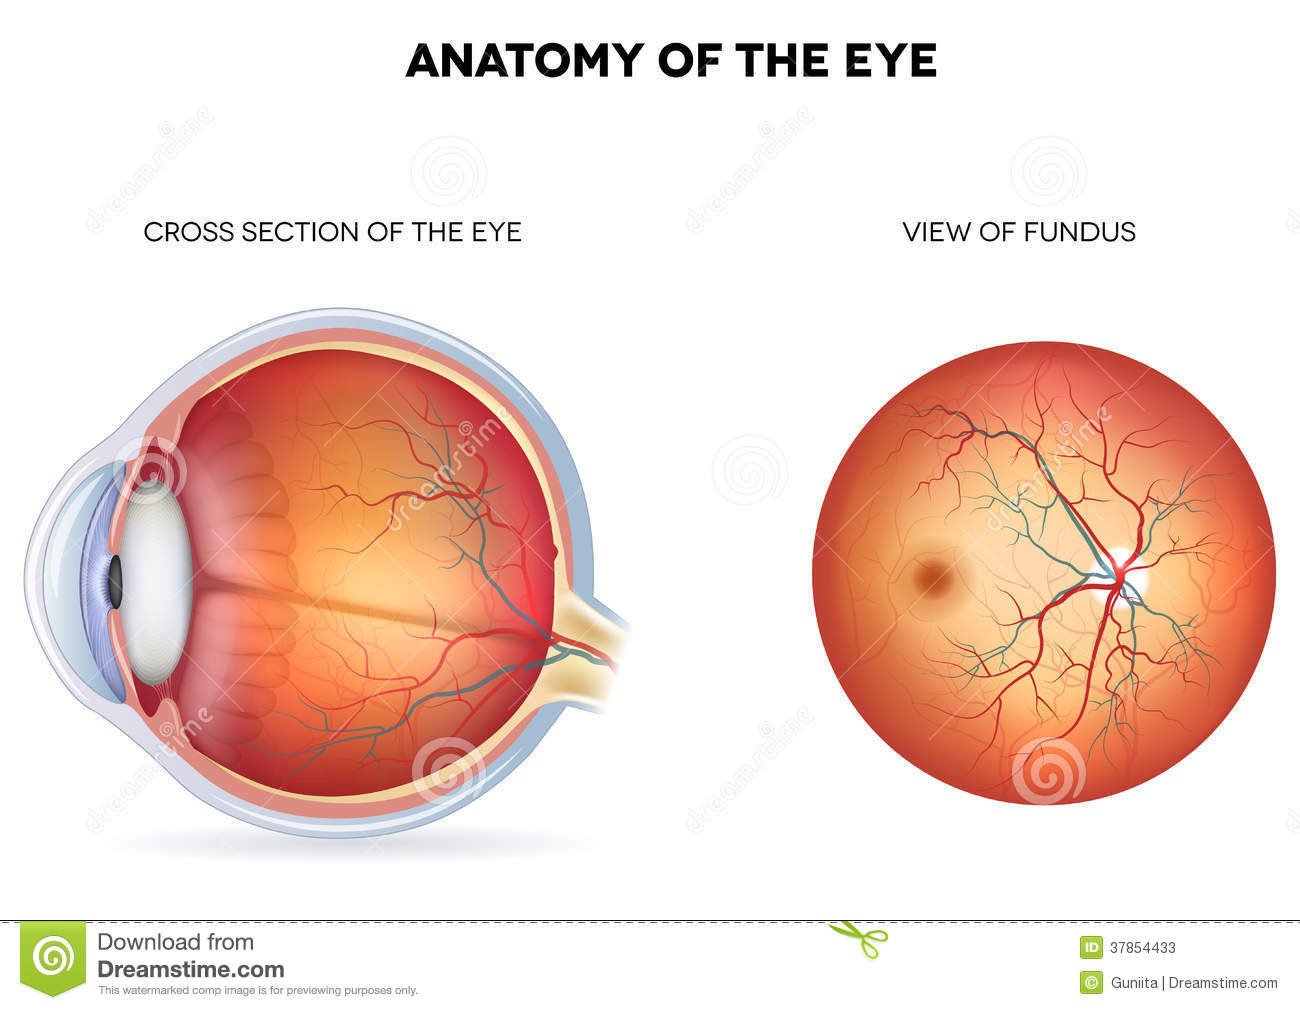 blind eye diagram agile software development process anatomy of the eye, cross section and view fund stock vector - image: 37854433